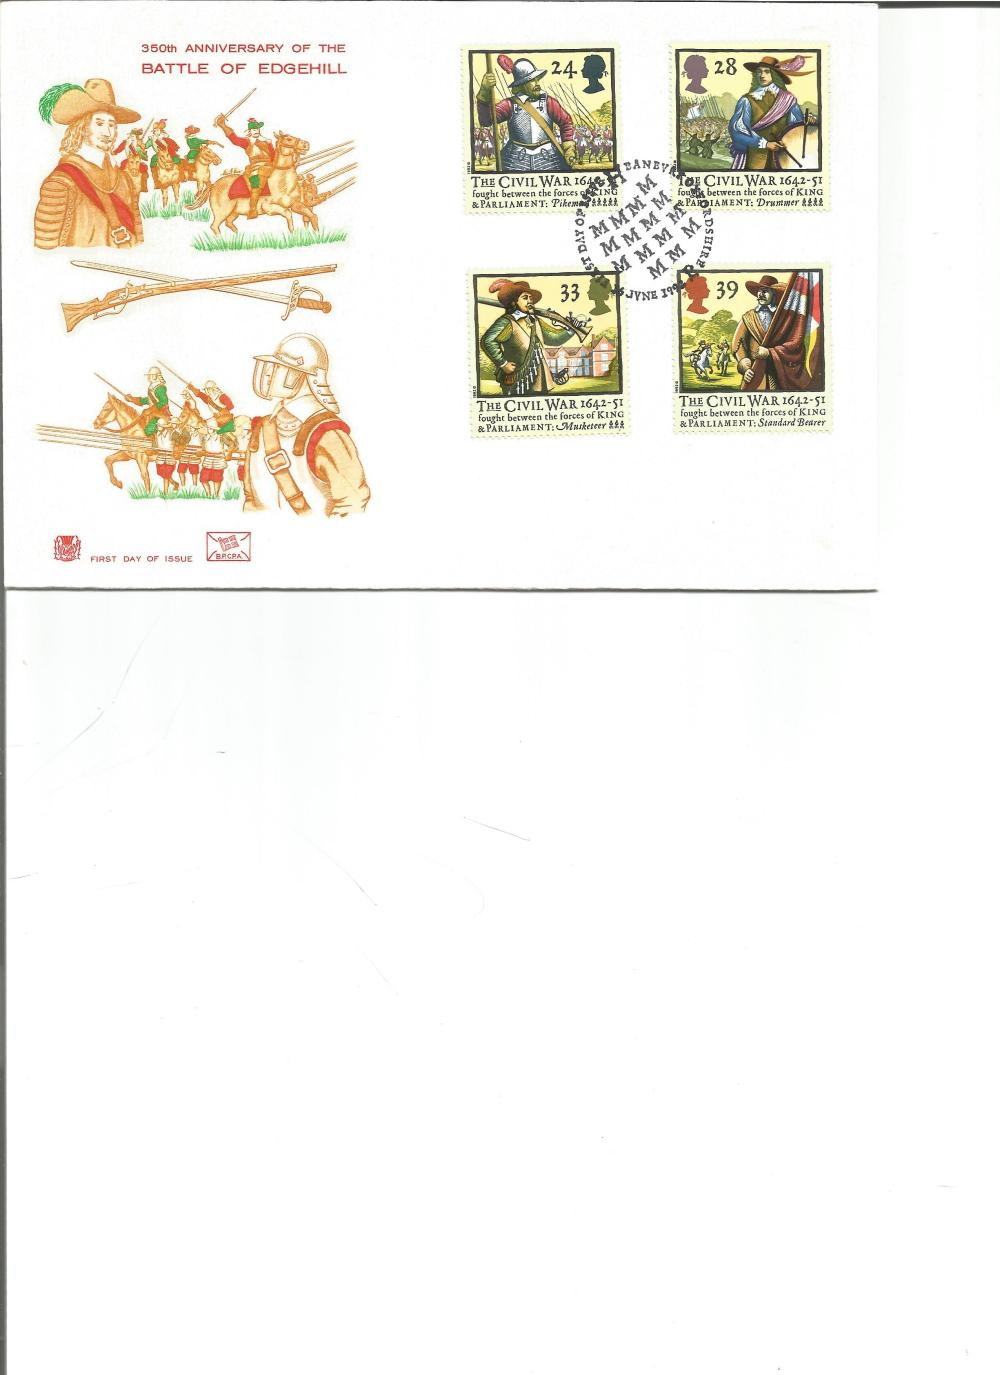 FDC 350TH Anniversary of the Battle of Edgehill c/w set of four commemorative stamps PM First day of